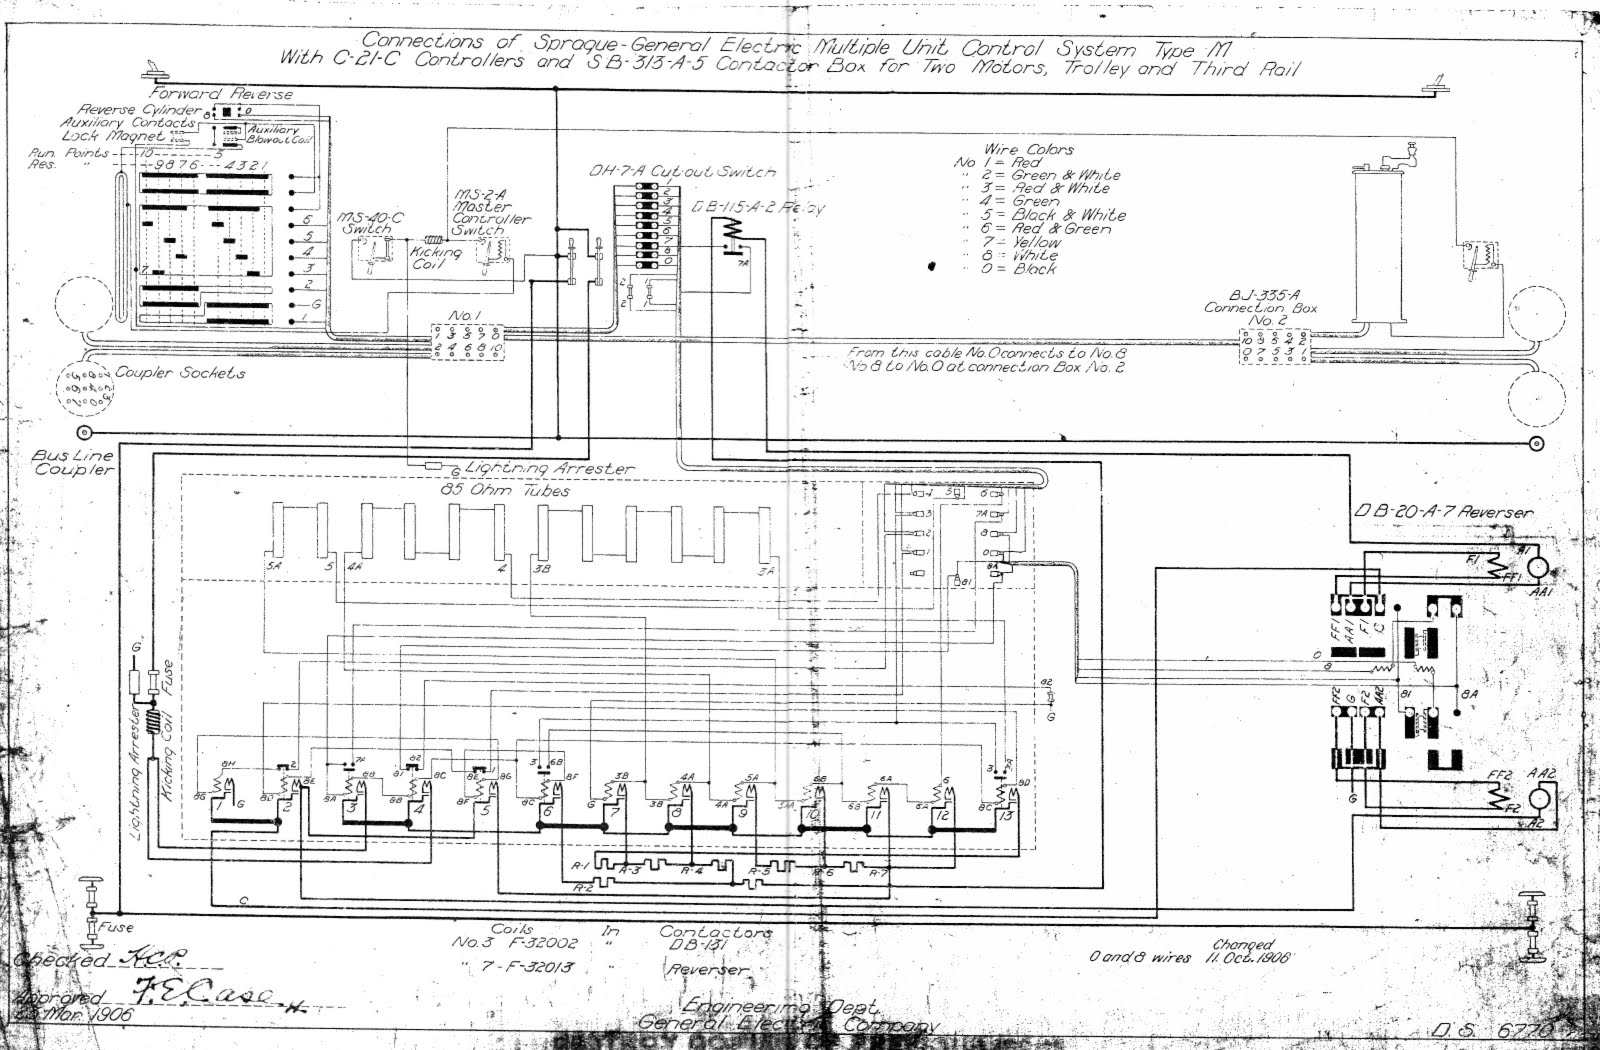 Control Circuit Diagrams on chevy truck wiring harness